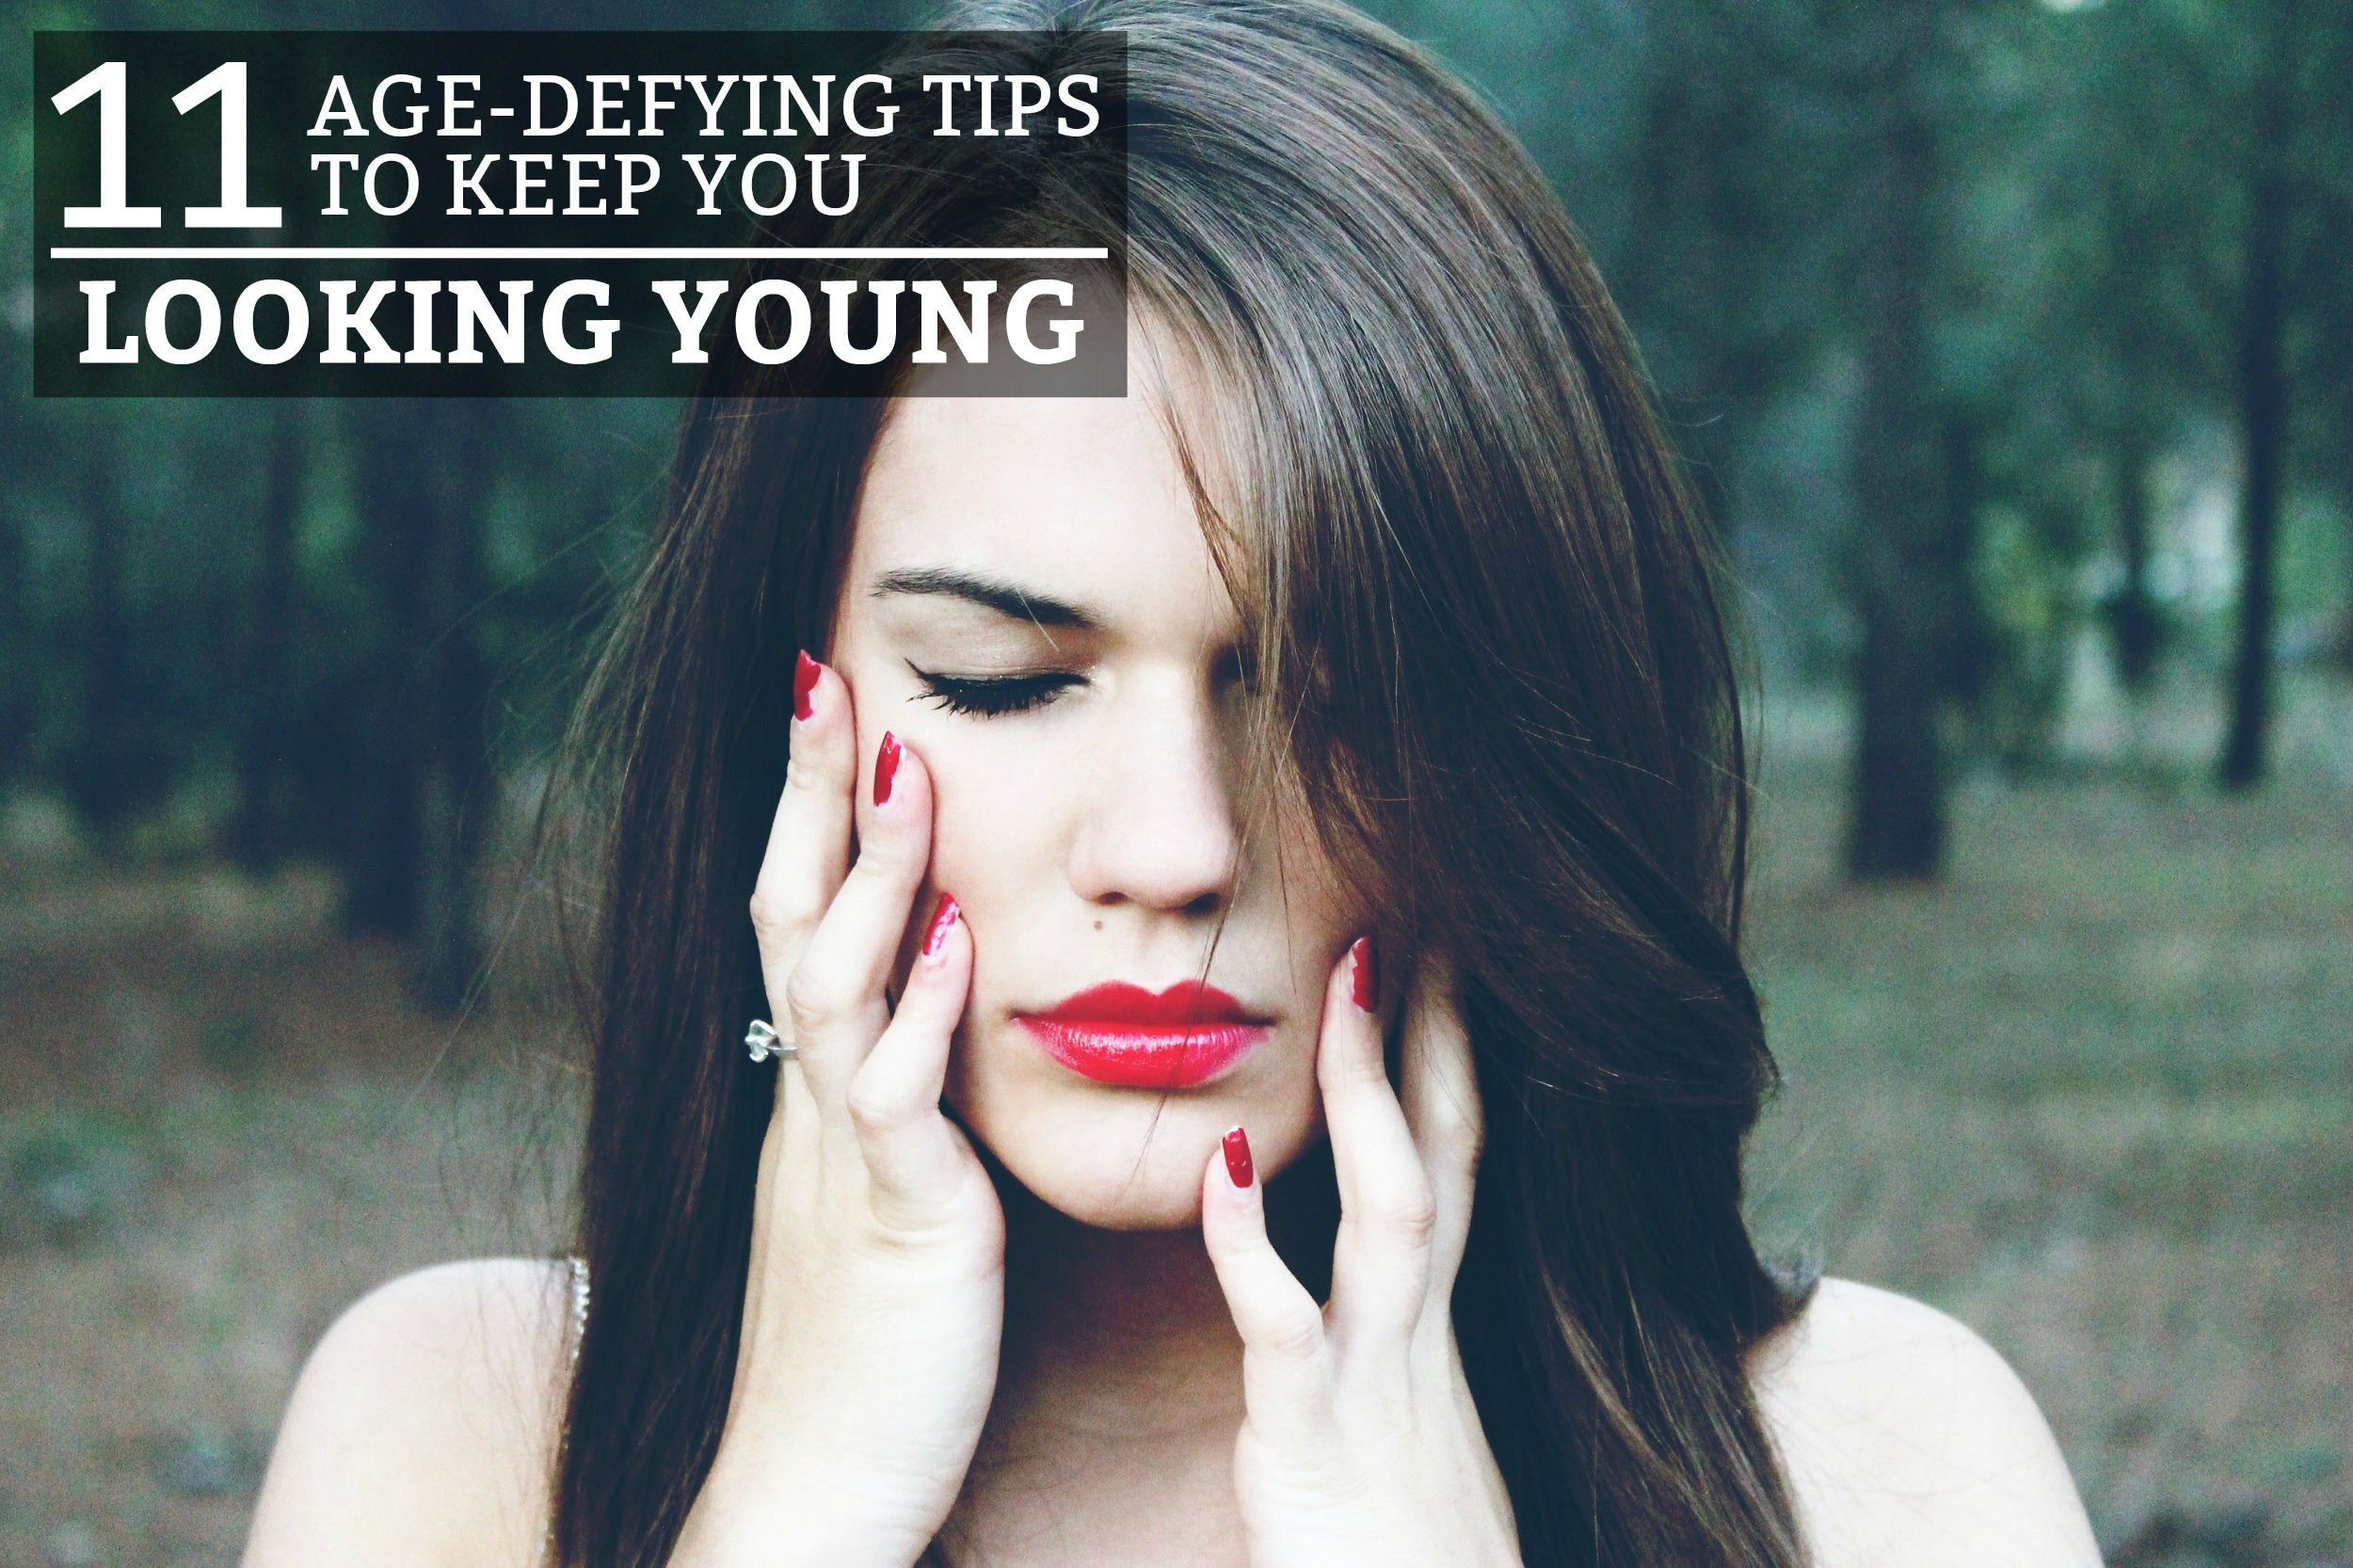 11 Age-Defying Tips to Keep You Looking Young - 11 amazing and practical steps to keep your skin looking younger, tight, and glowing. www.tradingaverage.com